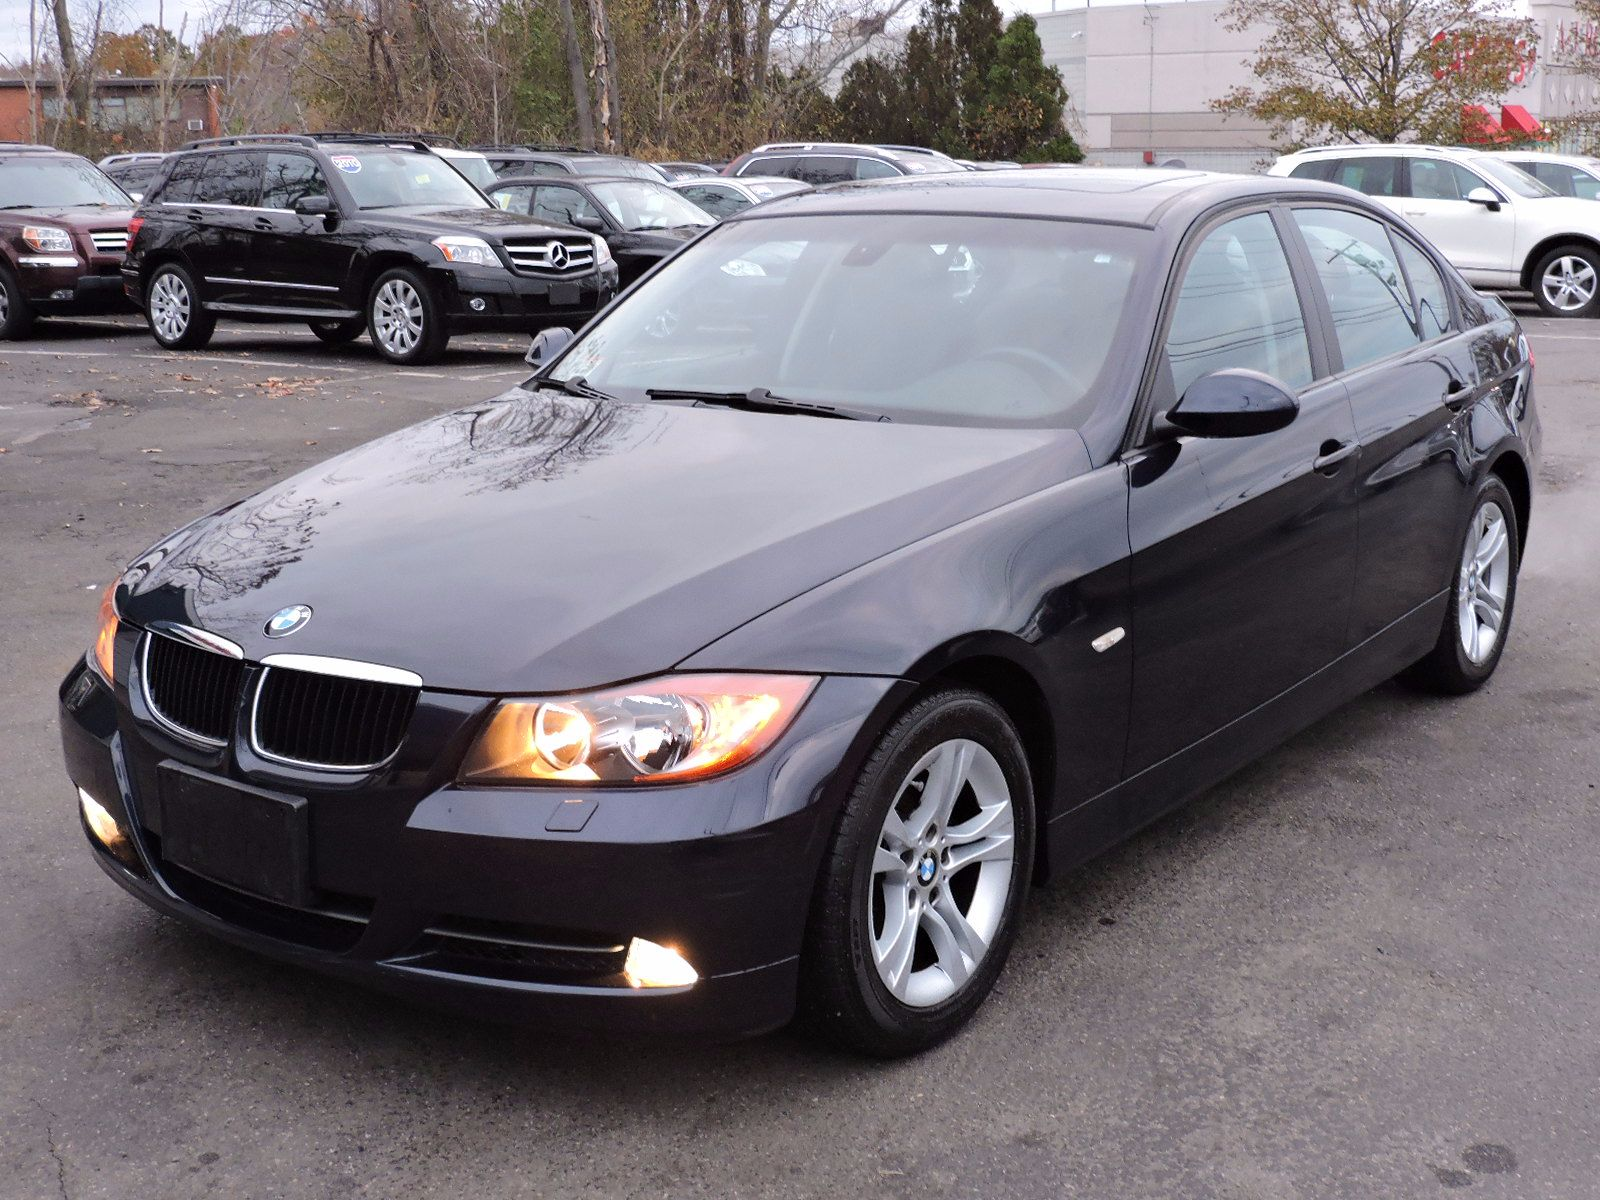 Used 2008 Bmw 328xi C300 Sport At Saugus Auto Mall